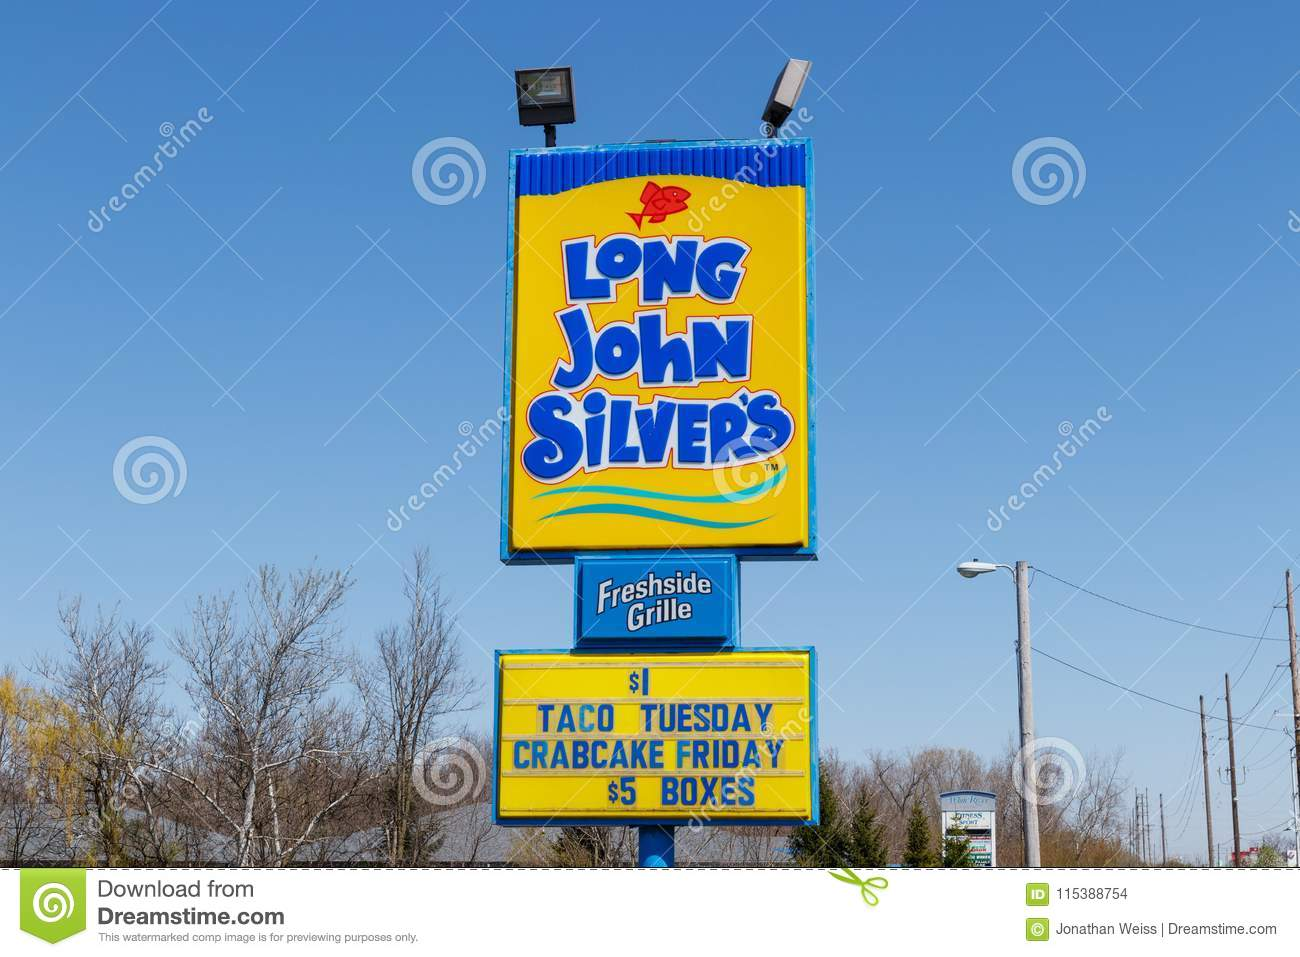 Anderson - Circa April 2018: Long John Silver`s fast food location. Long John Silver`s specializes in fried fish meals II